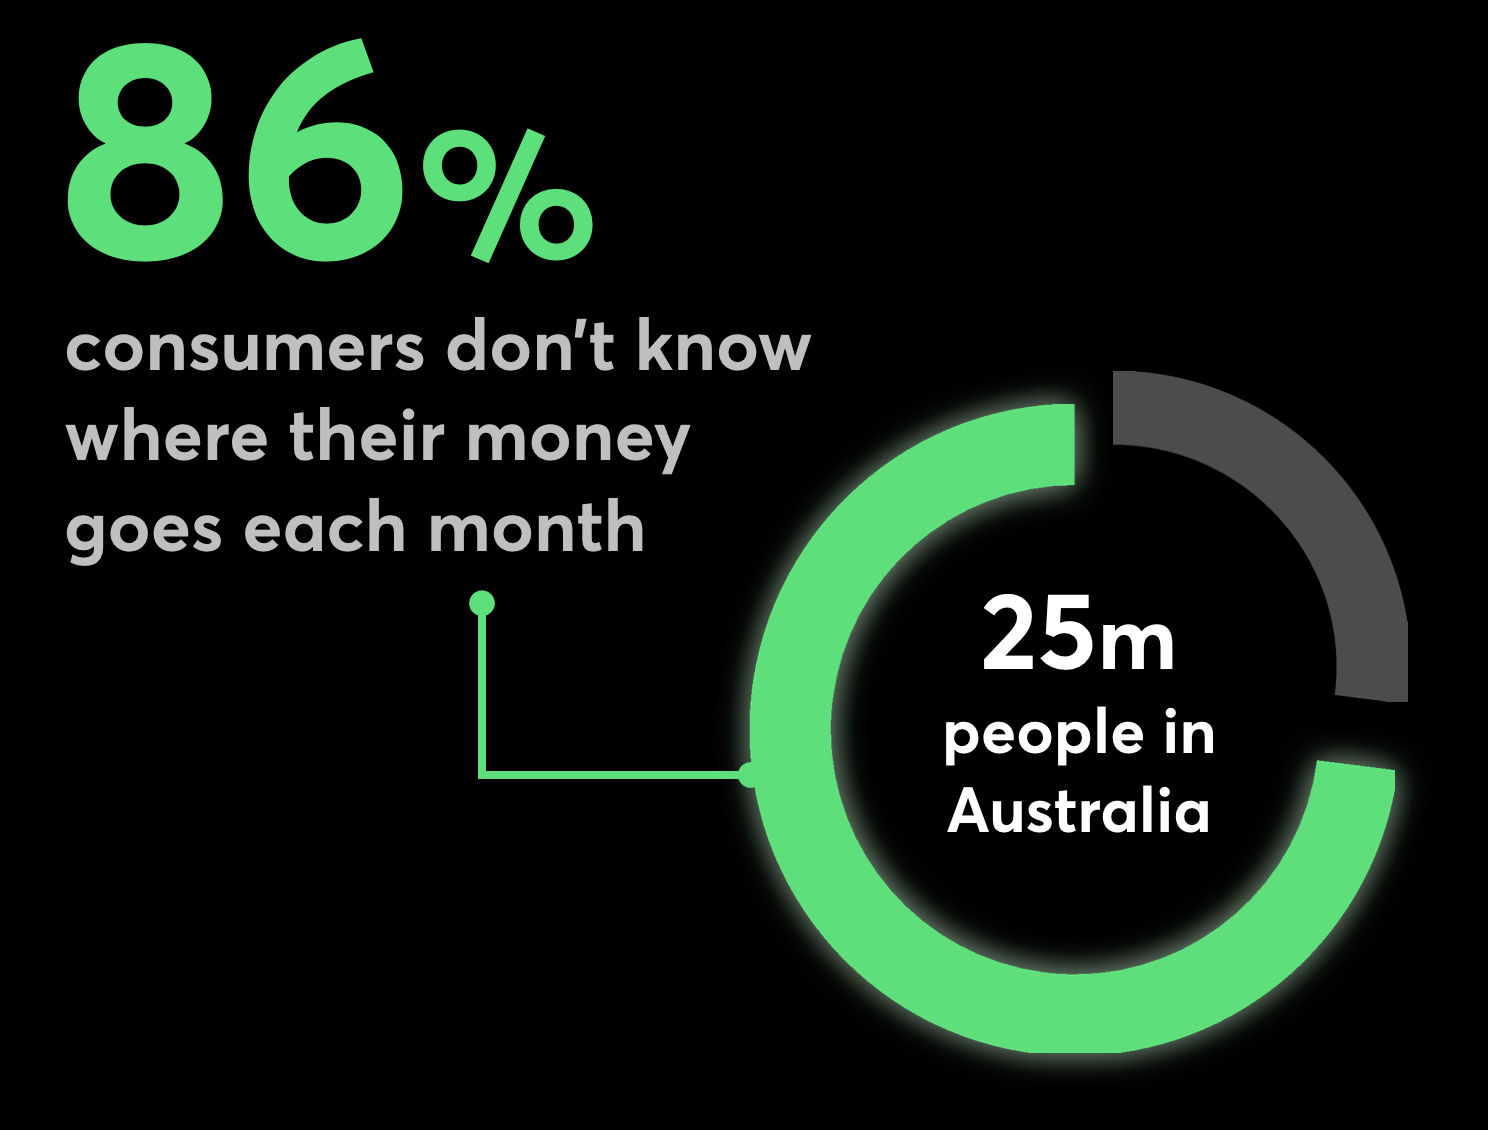 86% consumers don't know where their money goes each month